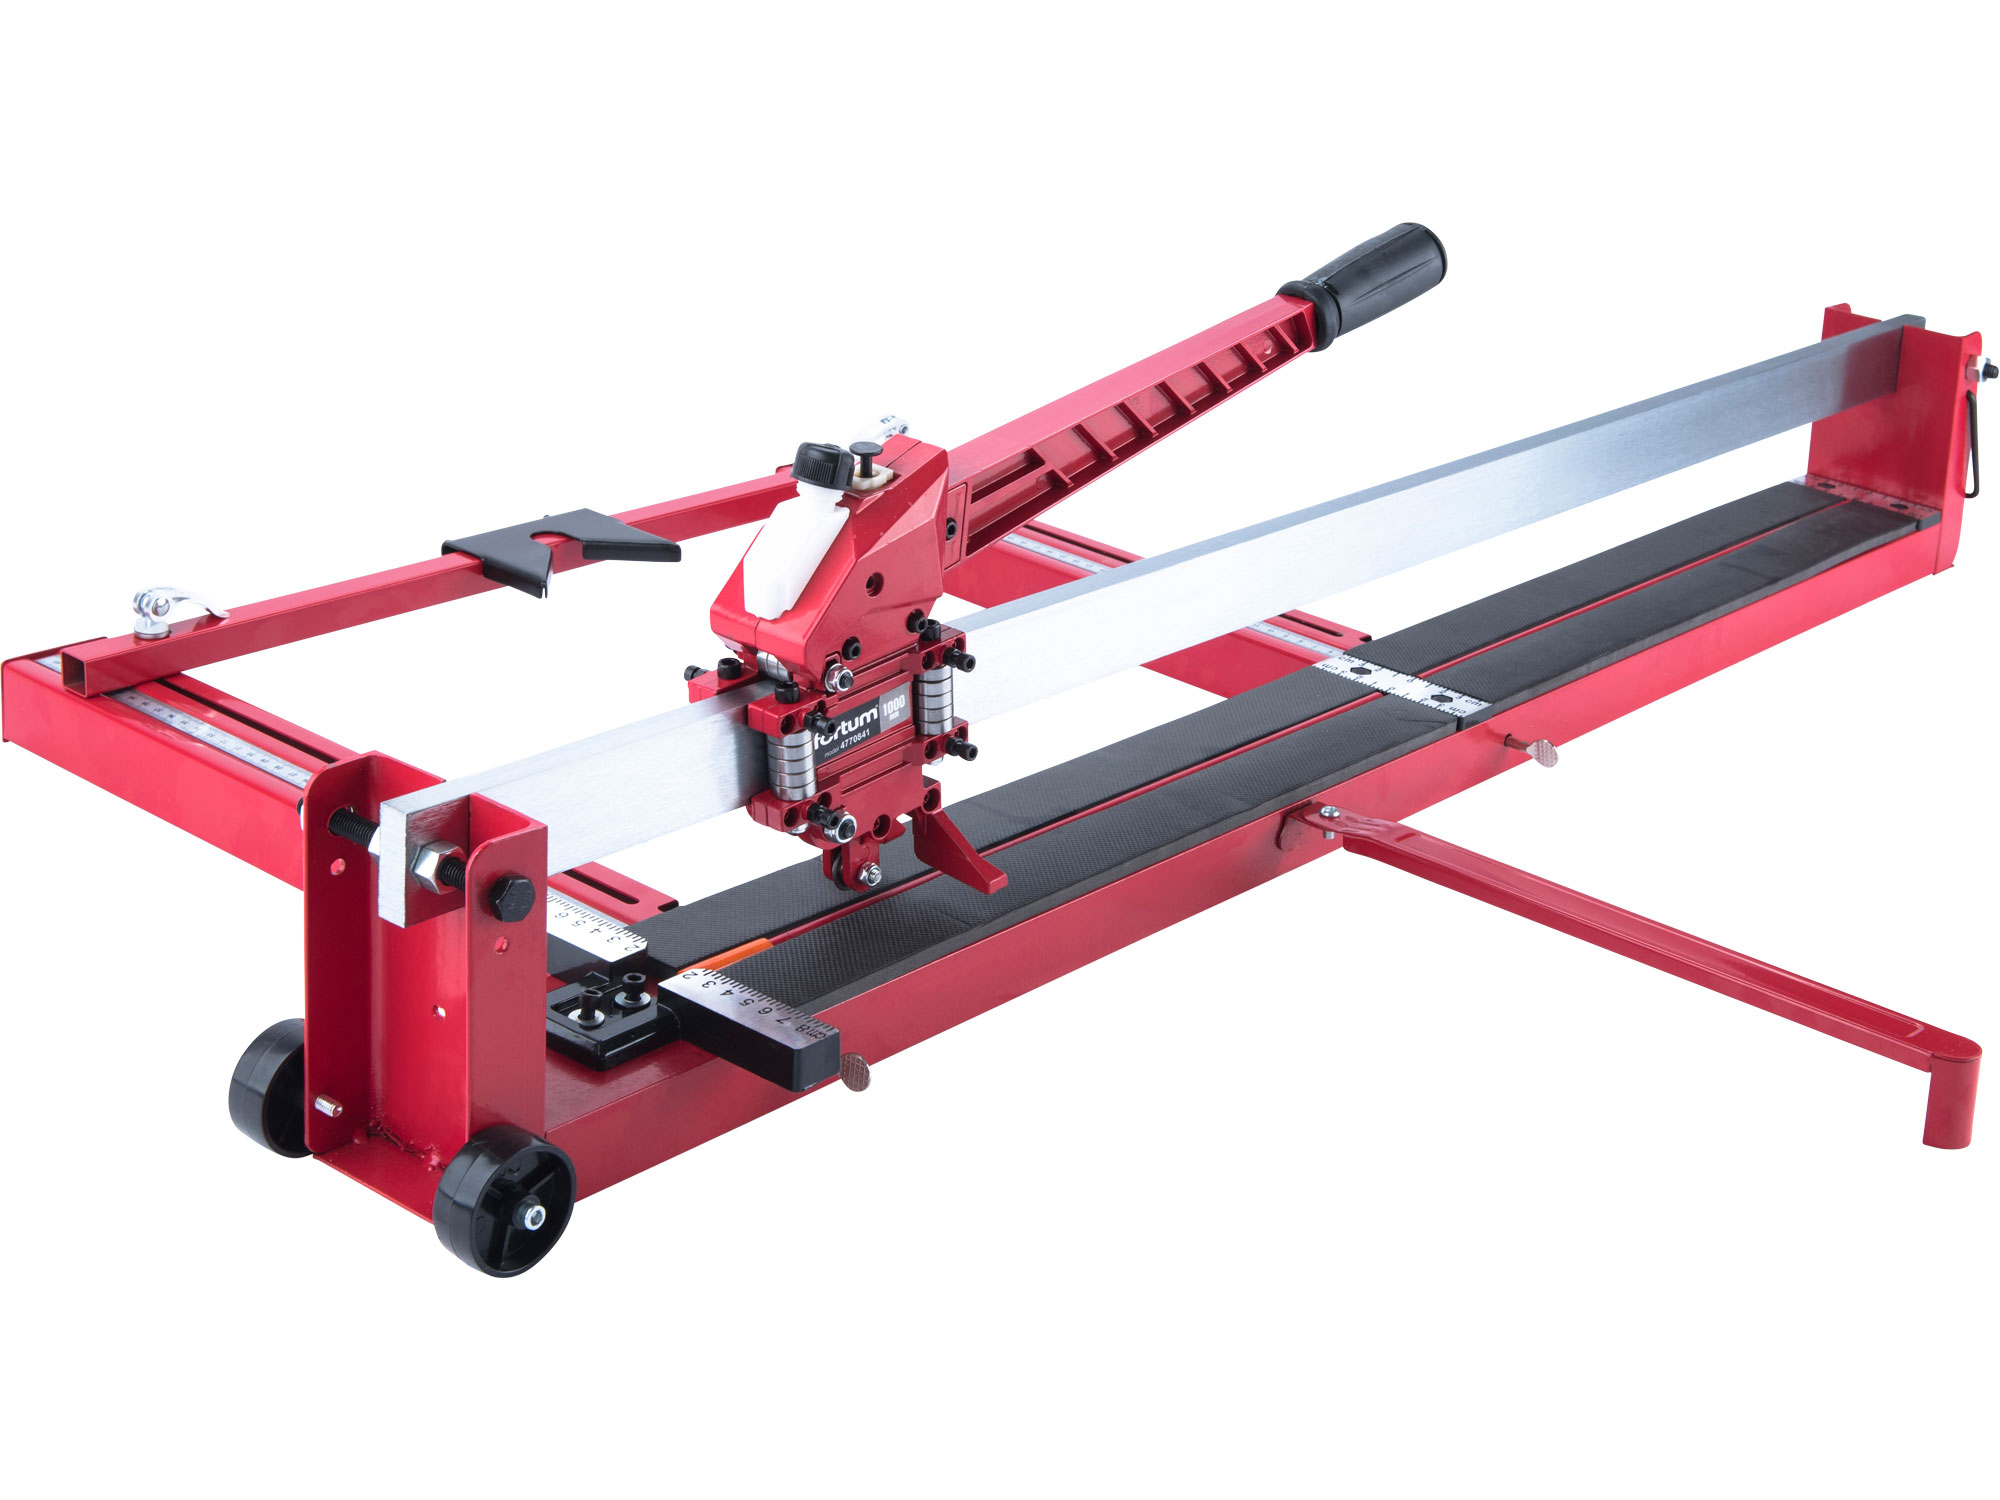 tile cutter 1000mm (without laser) steel base-plate with side ruler, oil pump-tank and nylon wheels